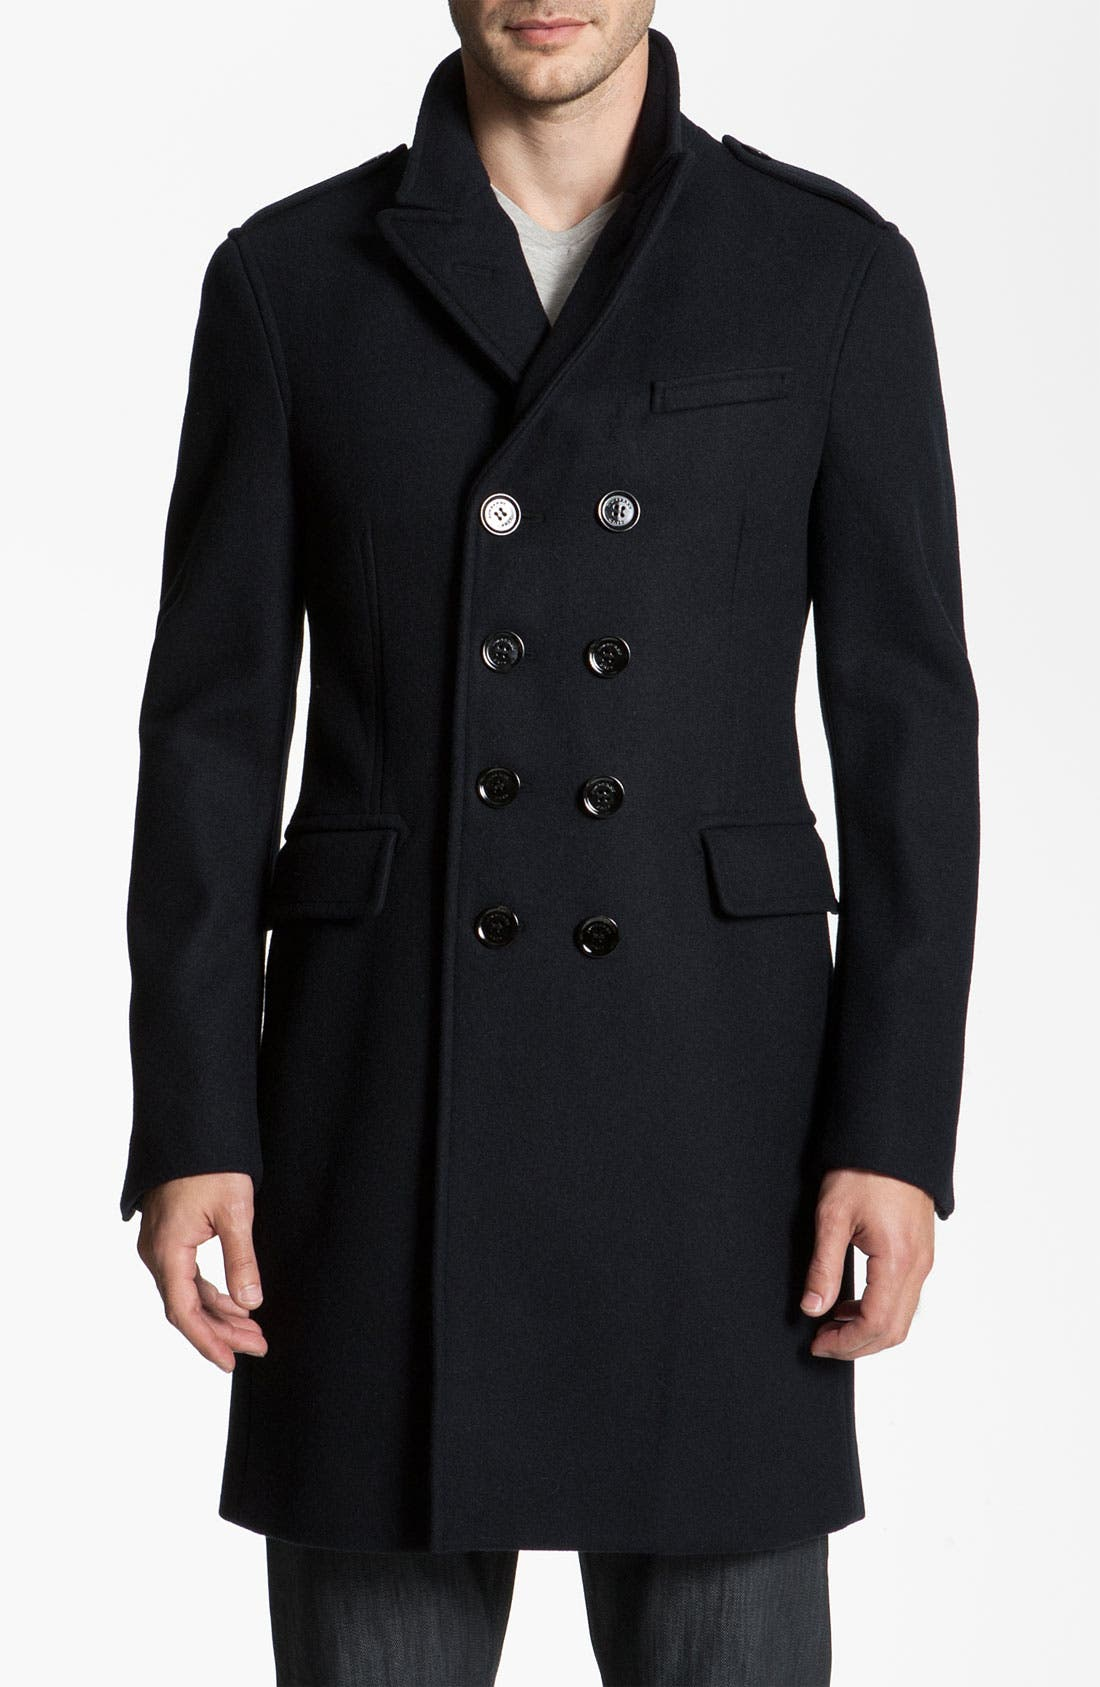 Alternate Image 1 Selected - Burberry Brit Wool Blend Trim Fit Trench Coat